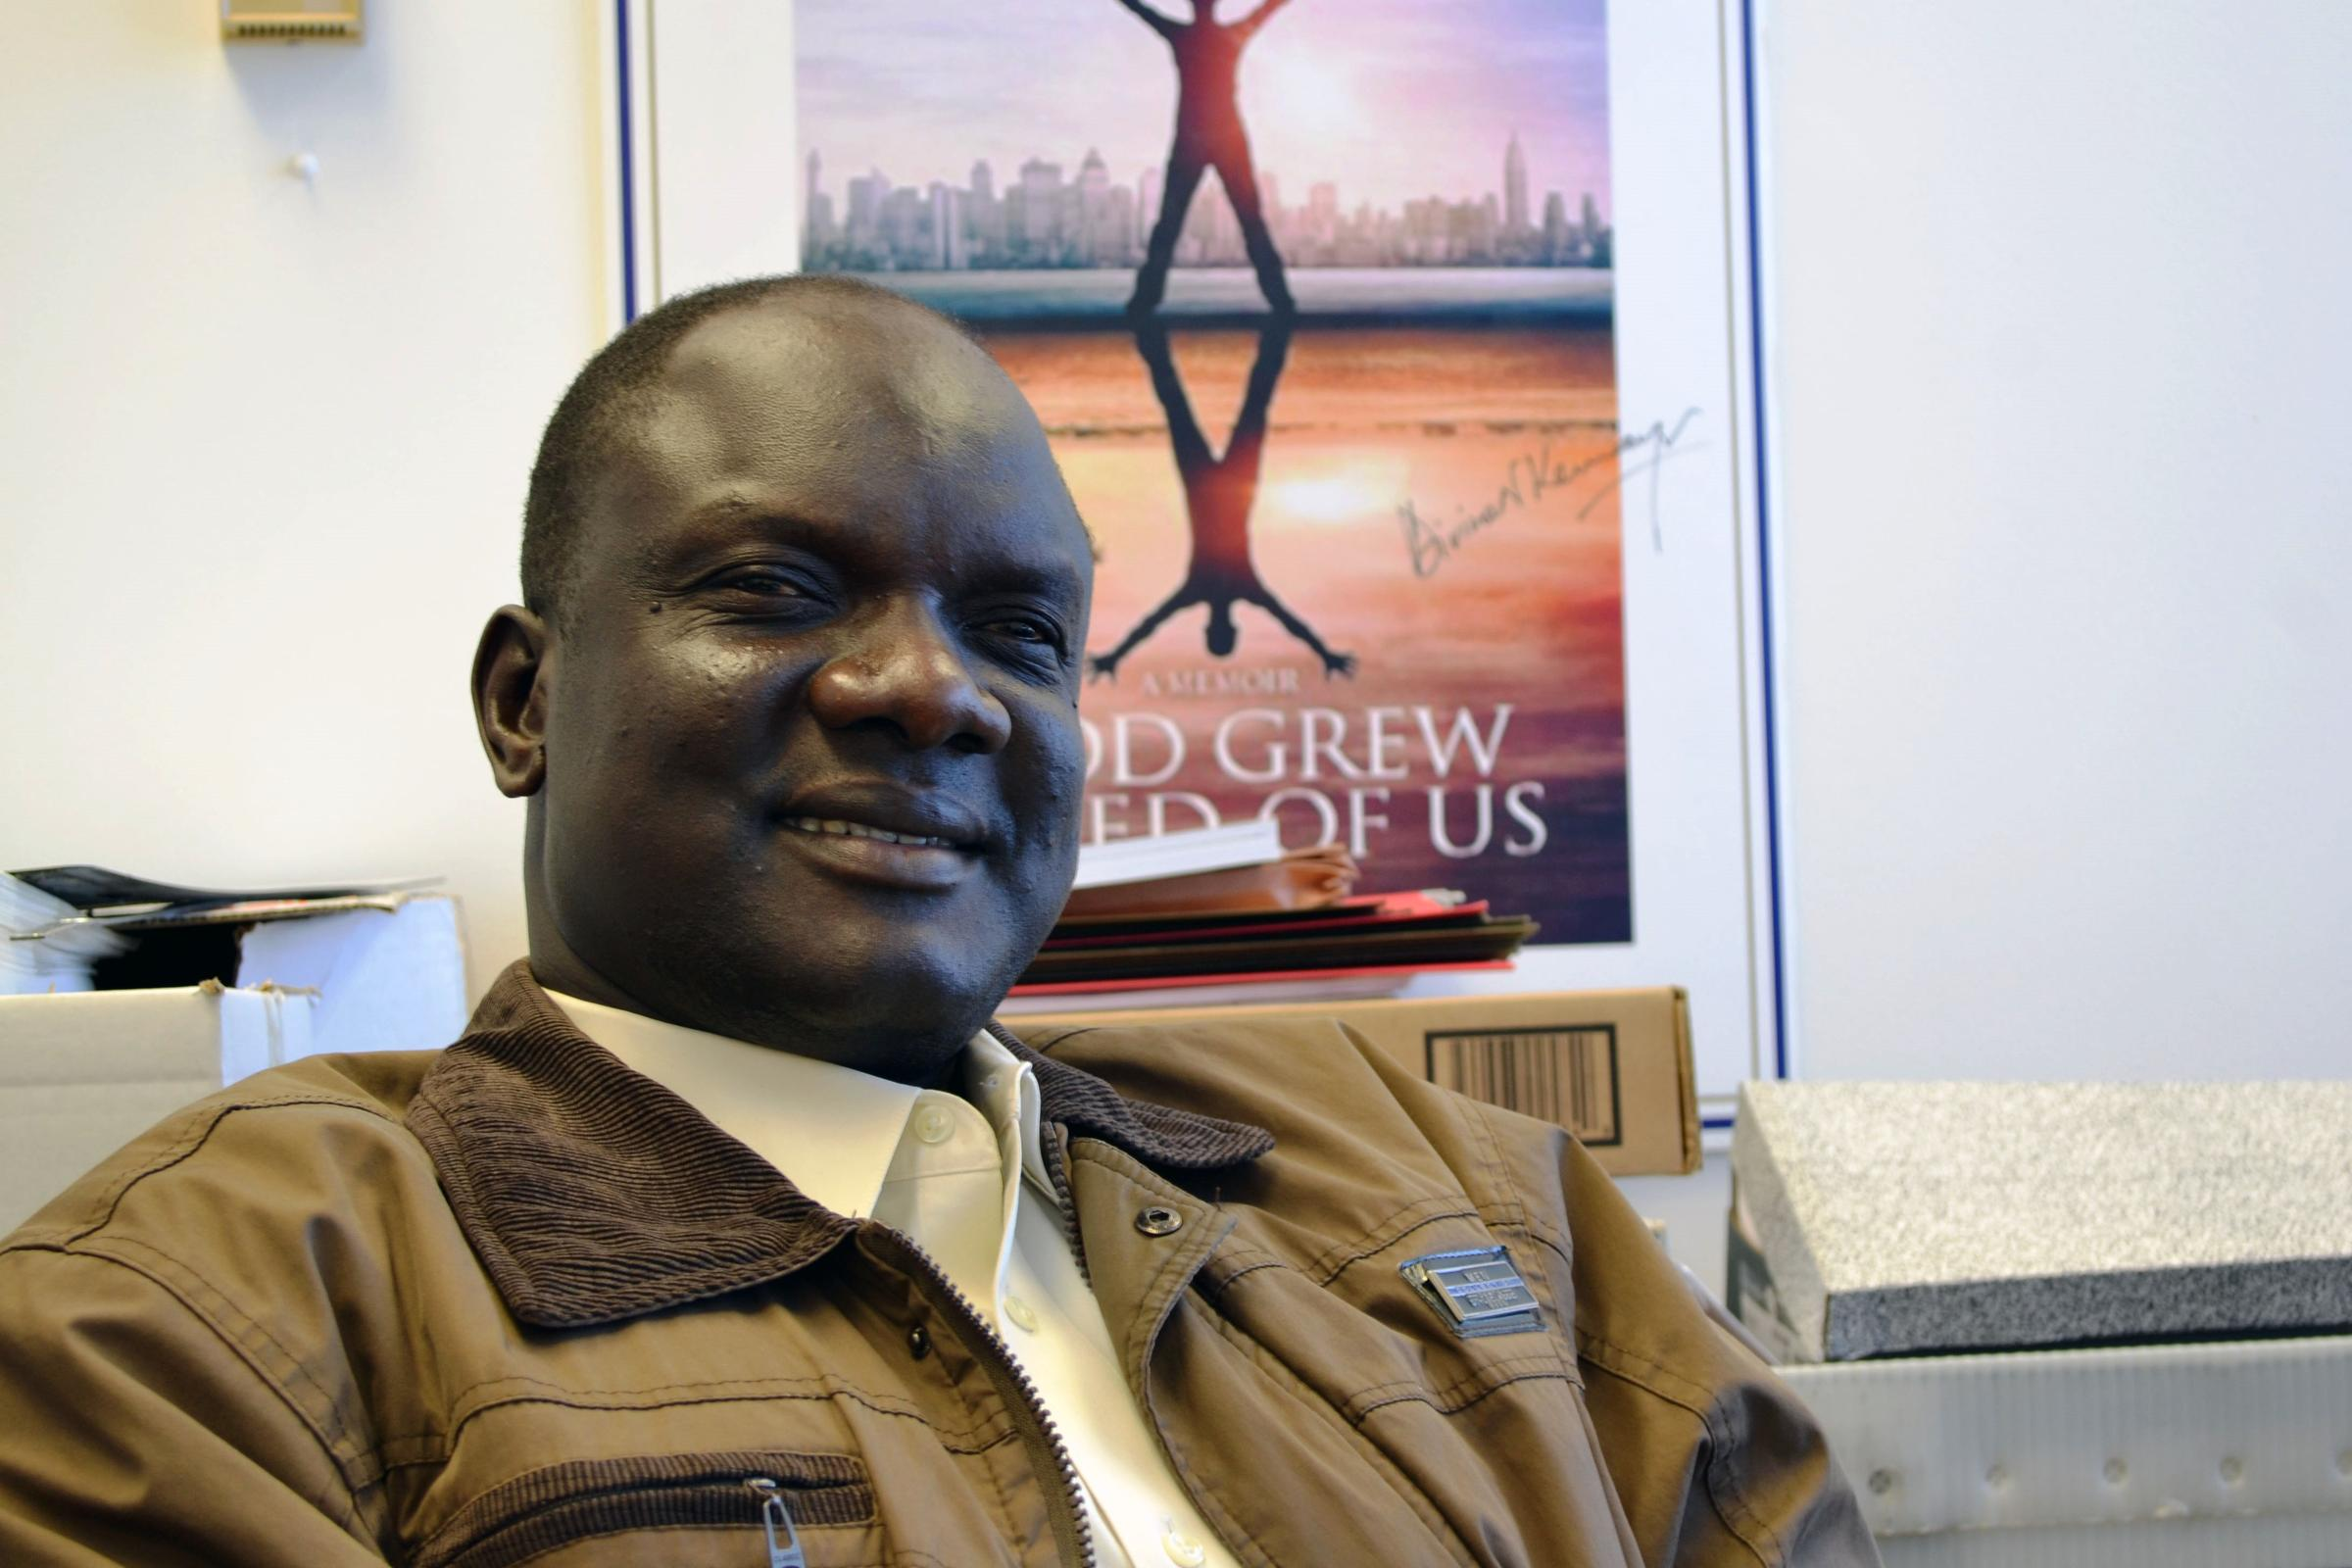 Senseless war threatens former lost boys work in south sudan john dau a former lost boy sudanese refugee in his office in syracuse publicscrutiny Gallery